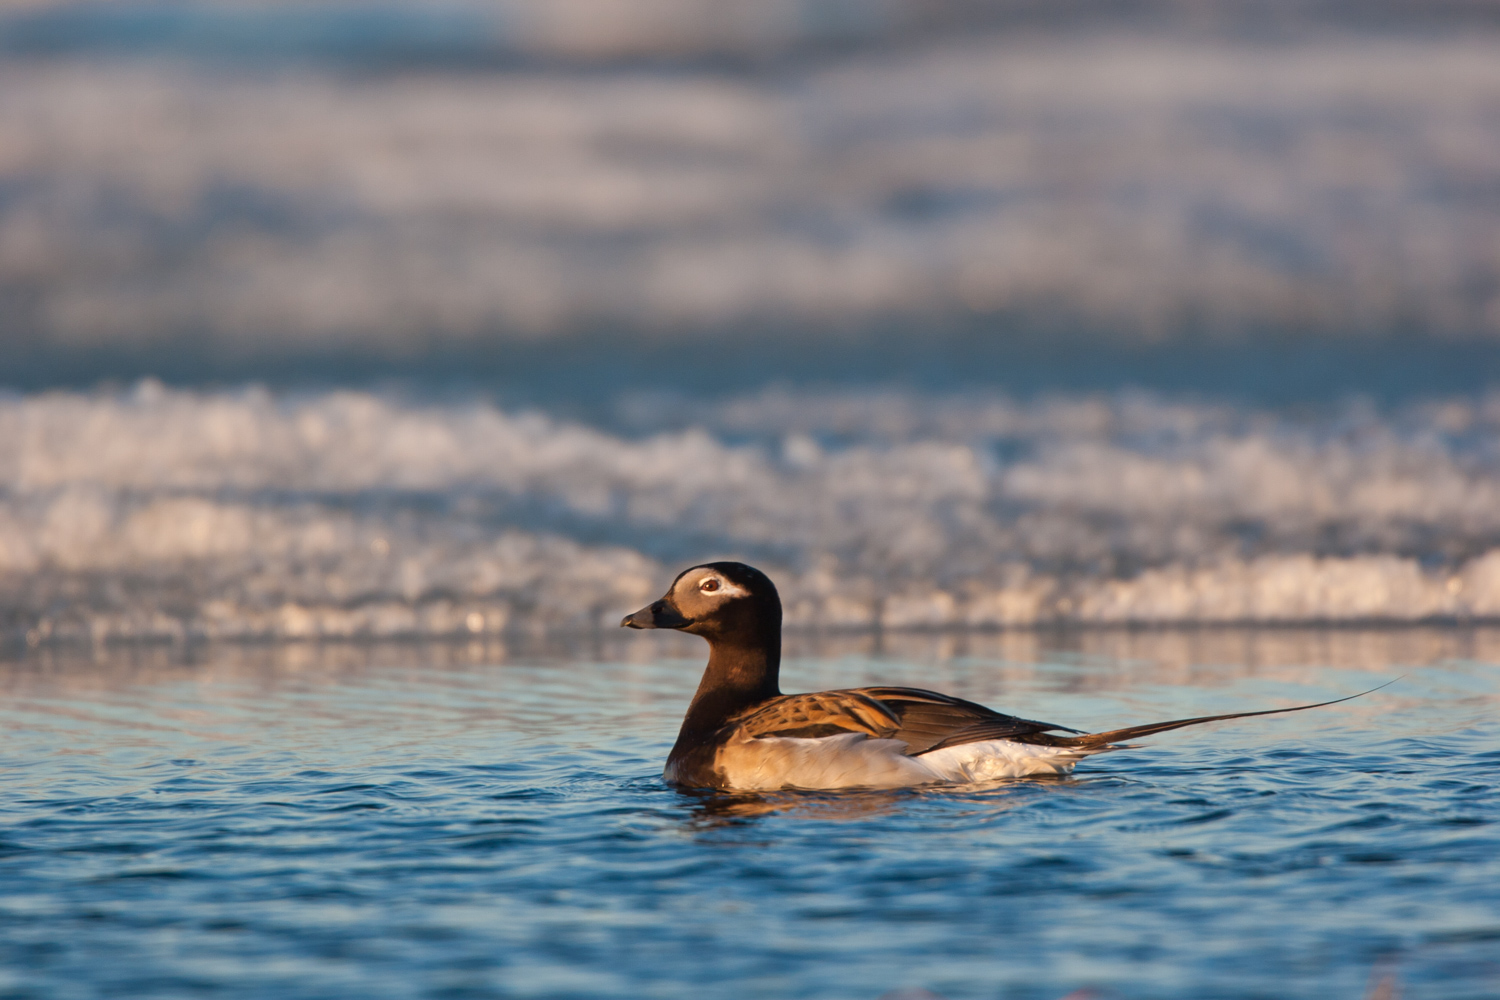 A Guide to Photographing Birds and Wildlife in a Wetland Area - duck swimming